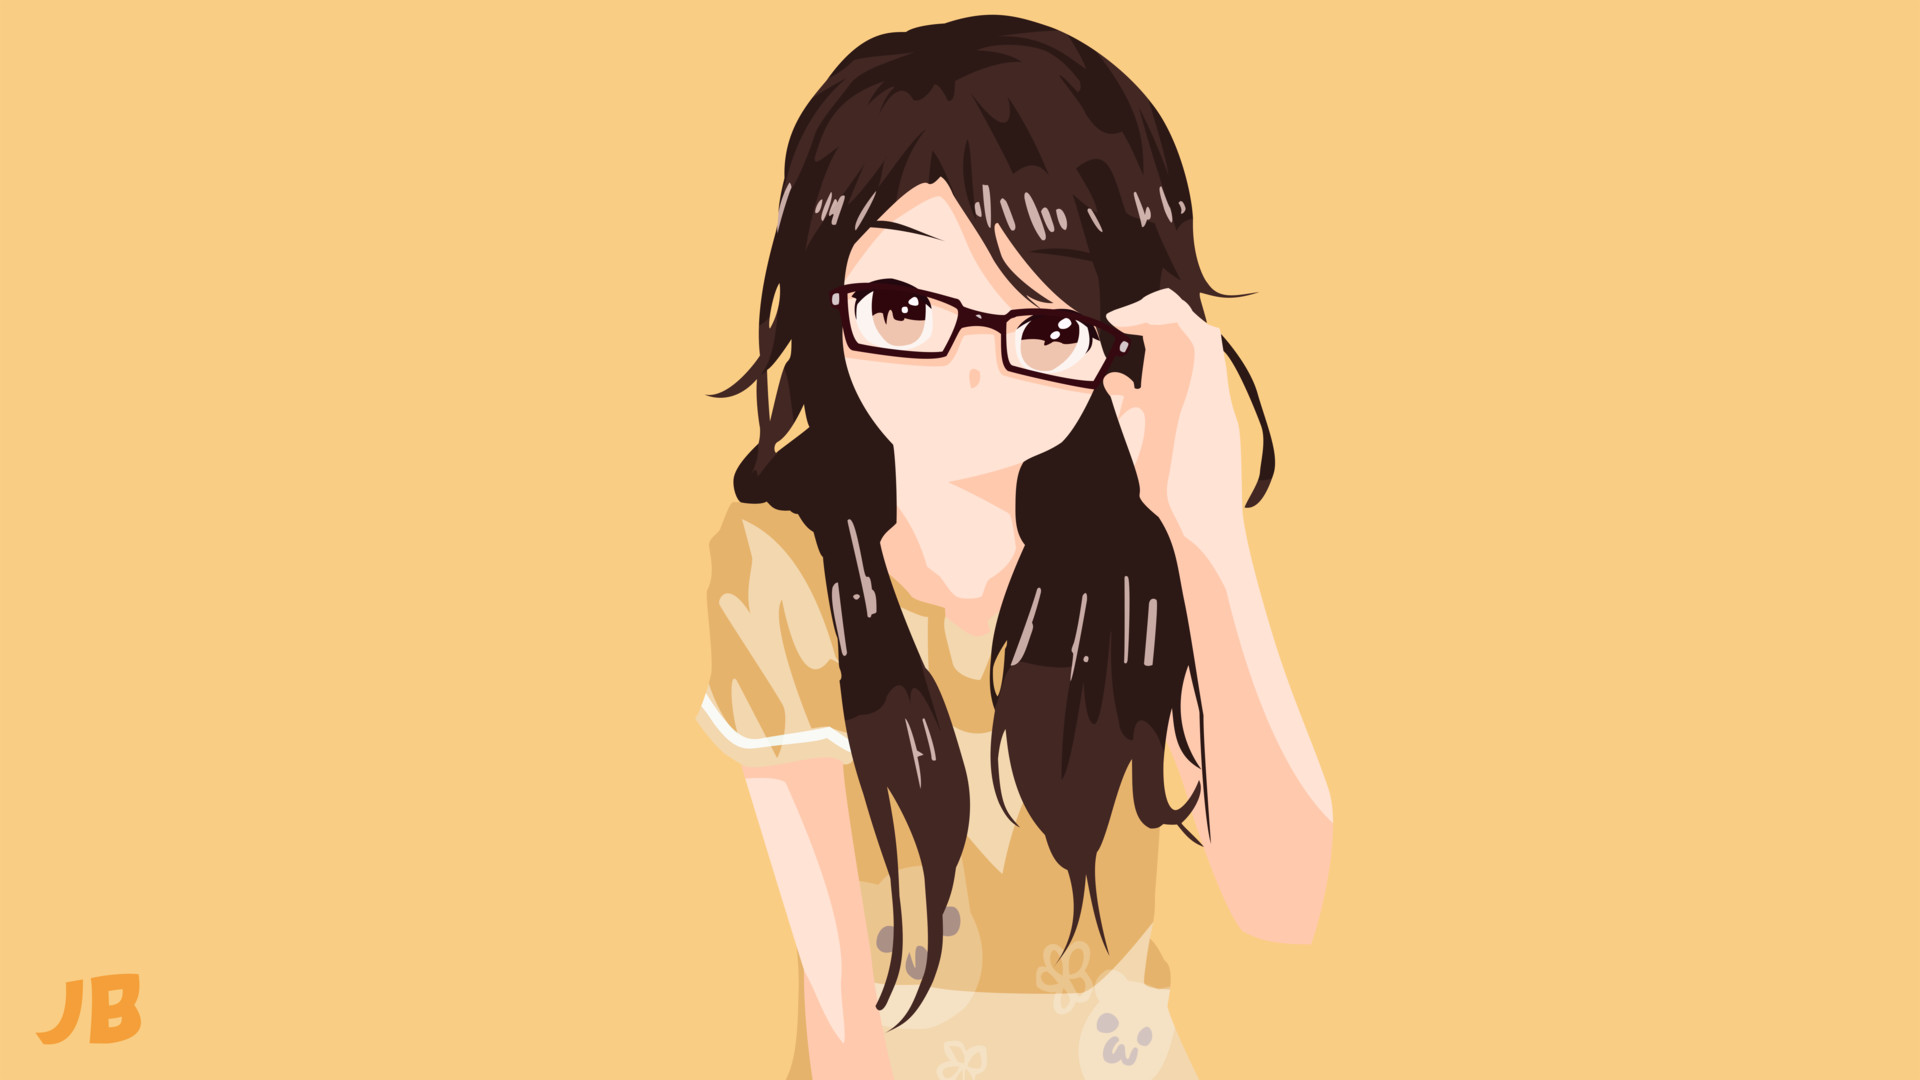 Cute girl with glasses